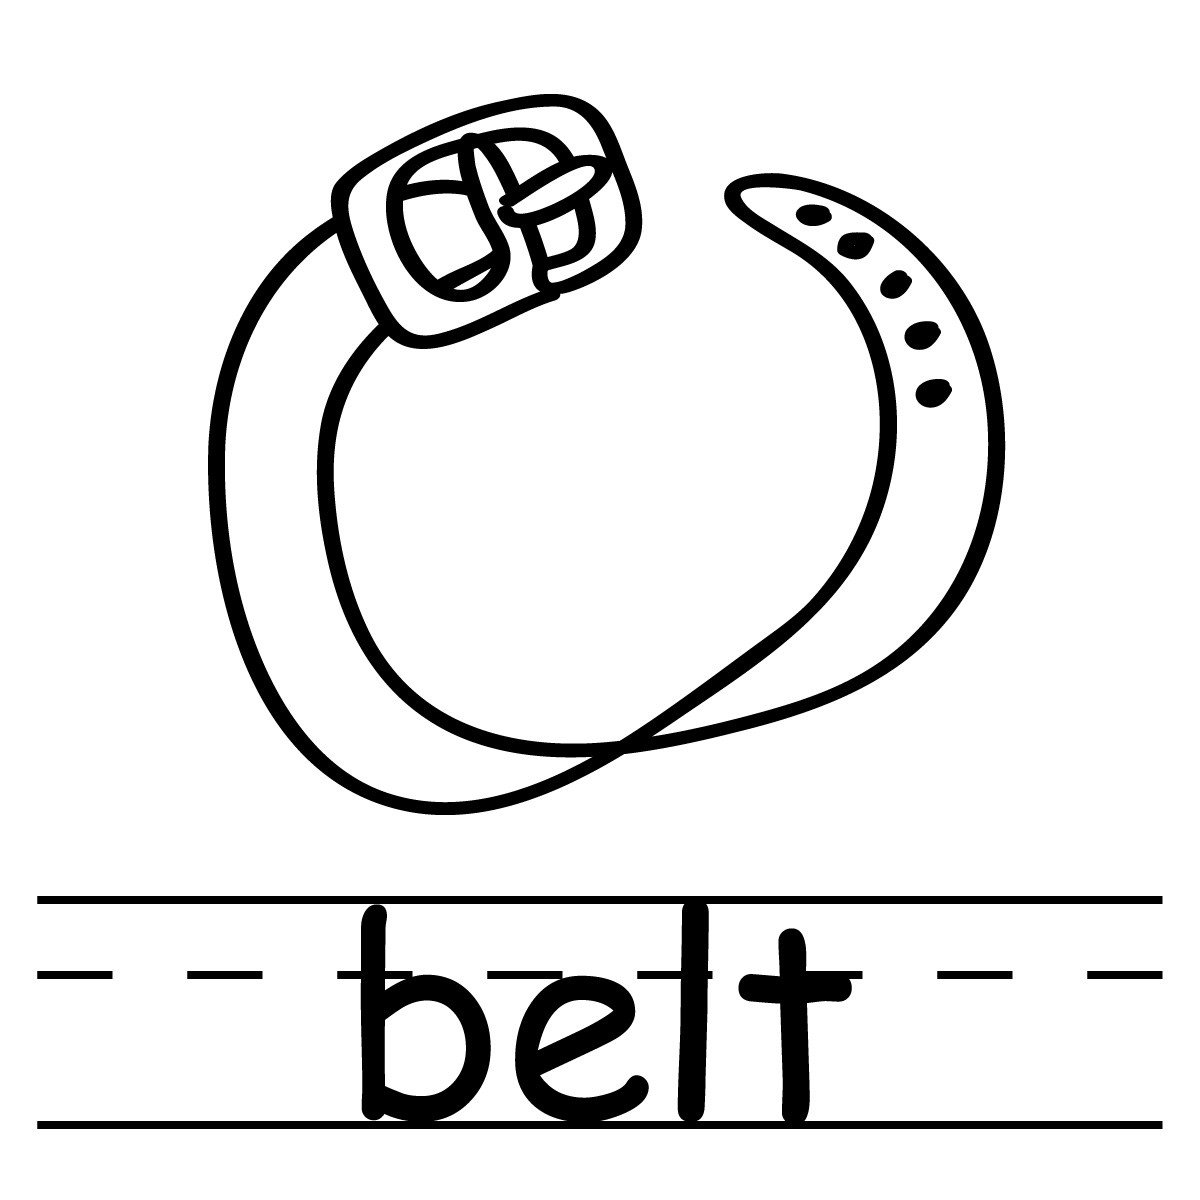 Belt of truth clipart graphic freeuse library Belt of truth clipart 5 » Clipart Portal graphic freeuse library